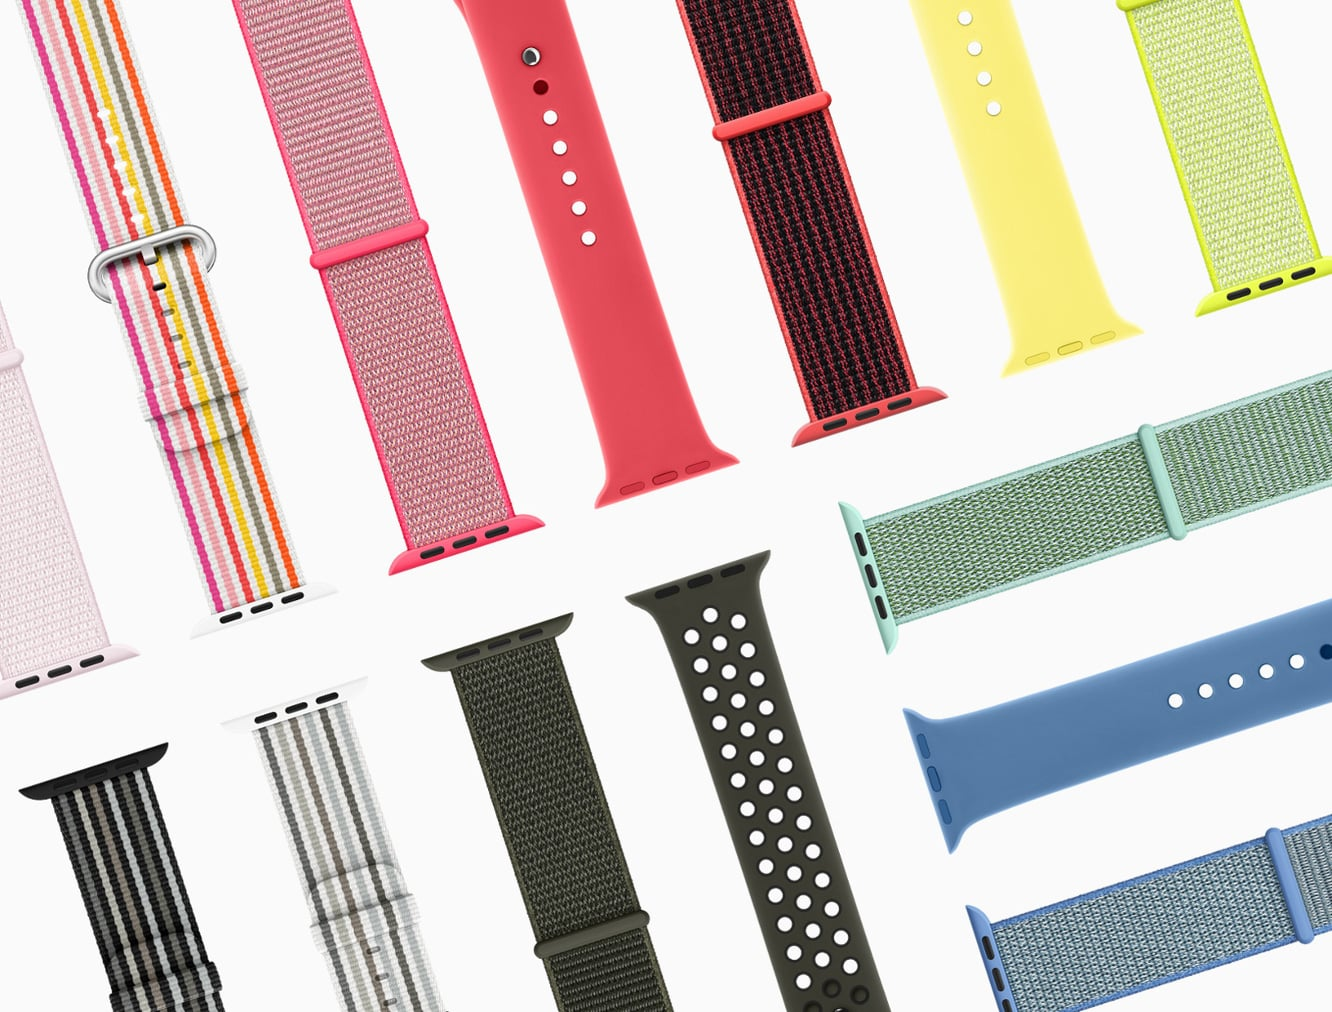 Apple reveals new Apple Watch bands for spring